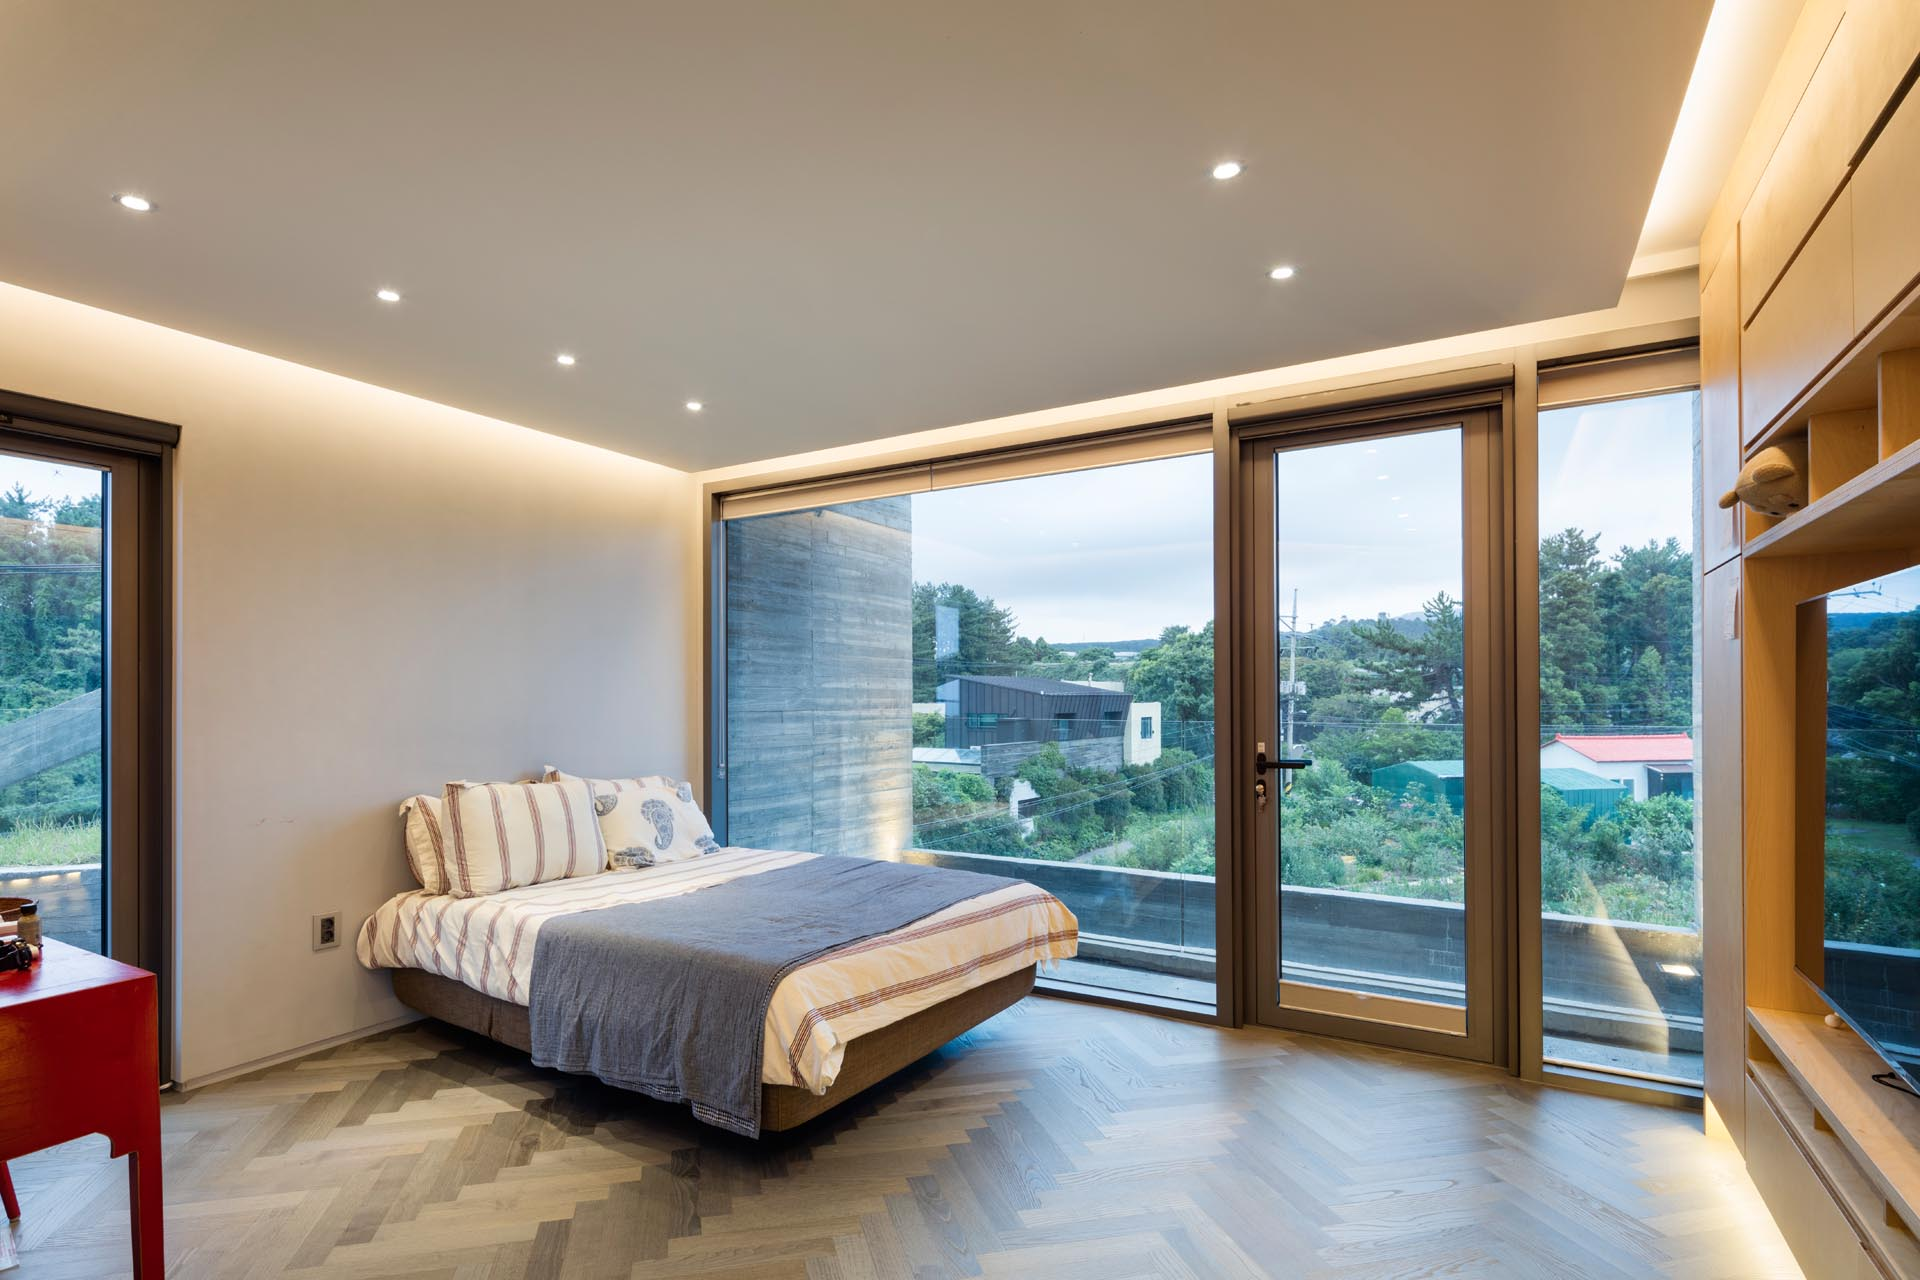 A minimalist bedroom with hidden lighting and large windows.